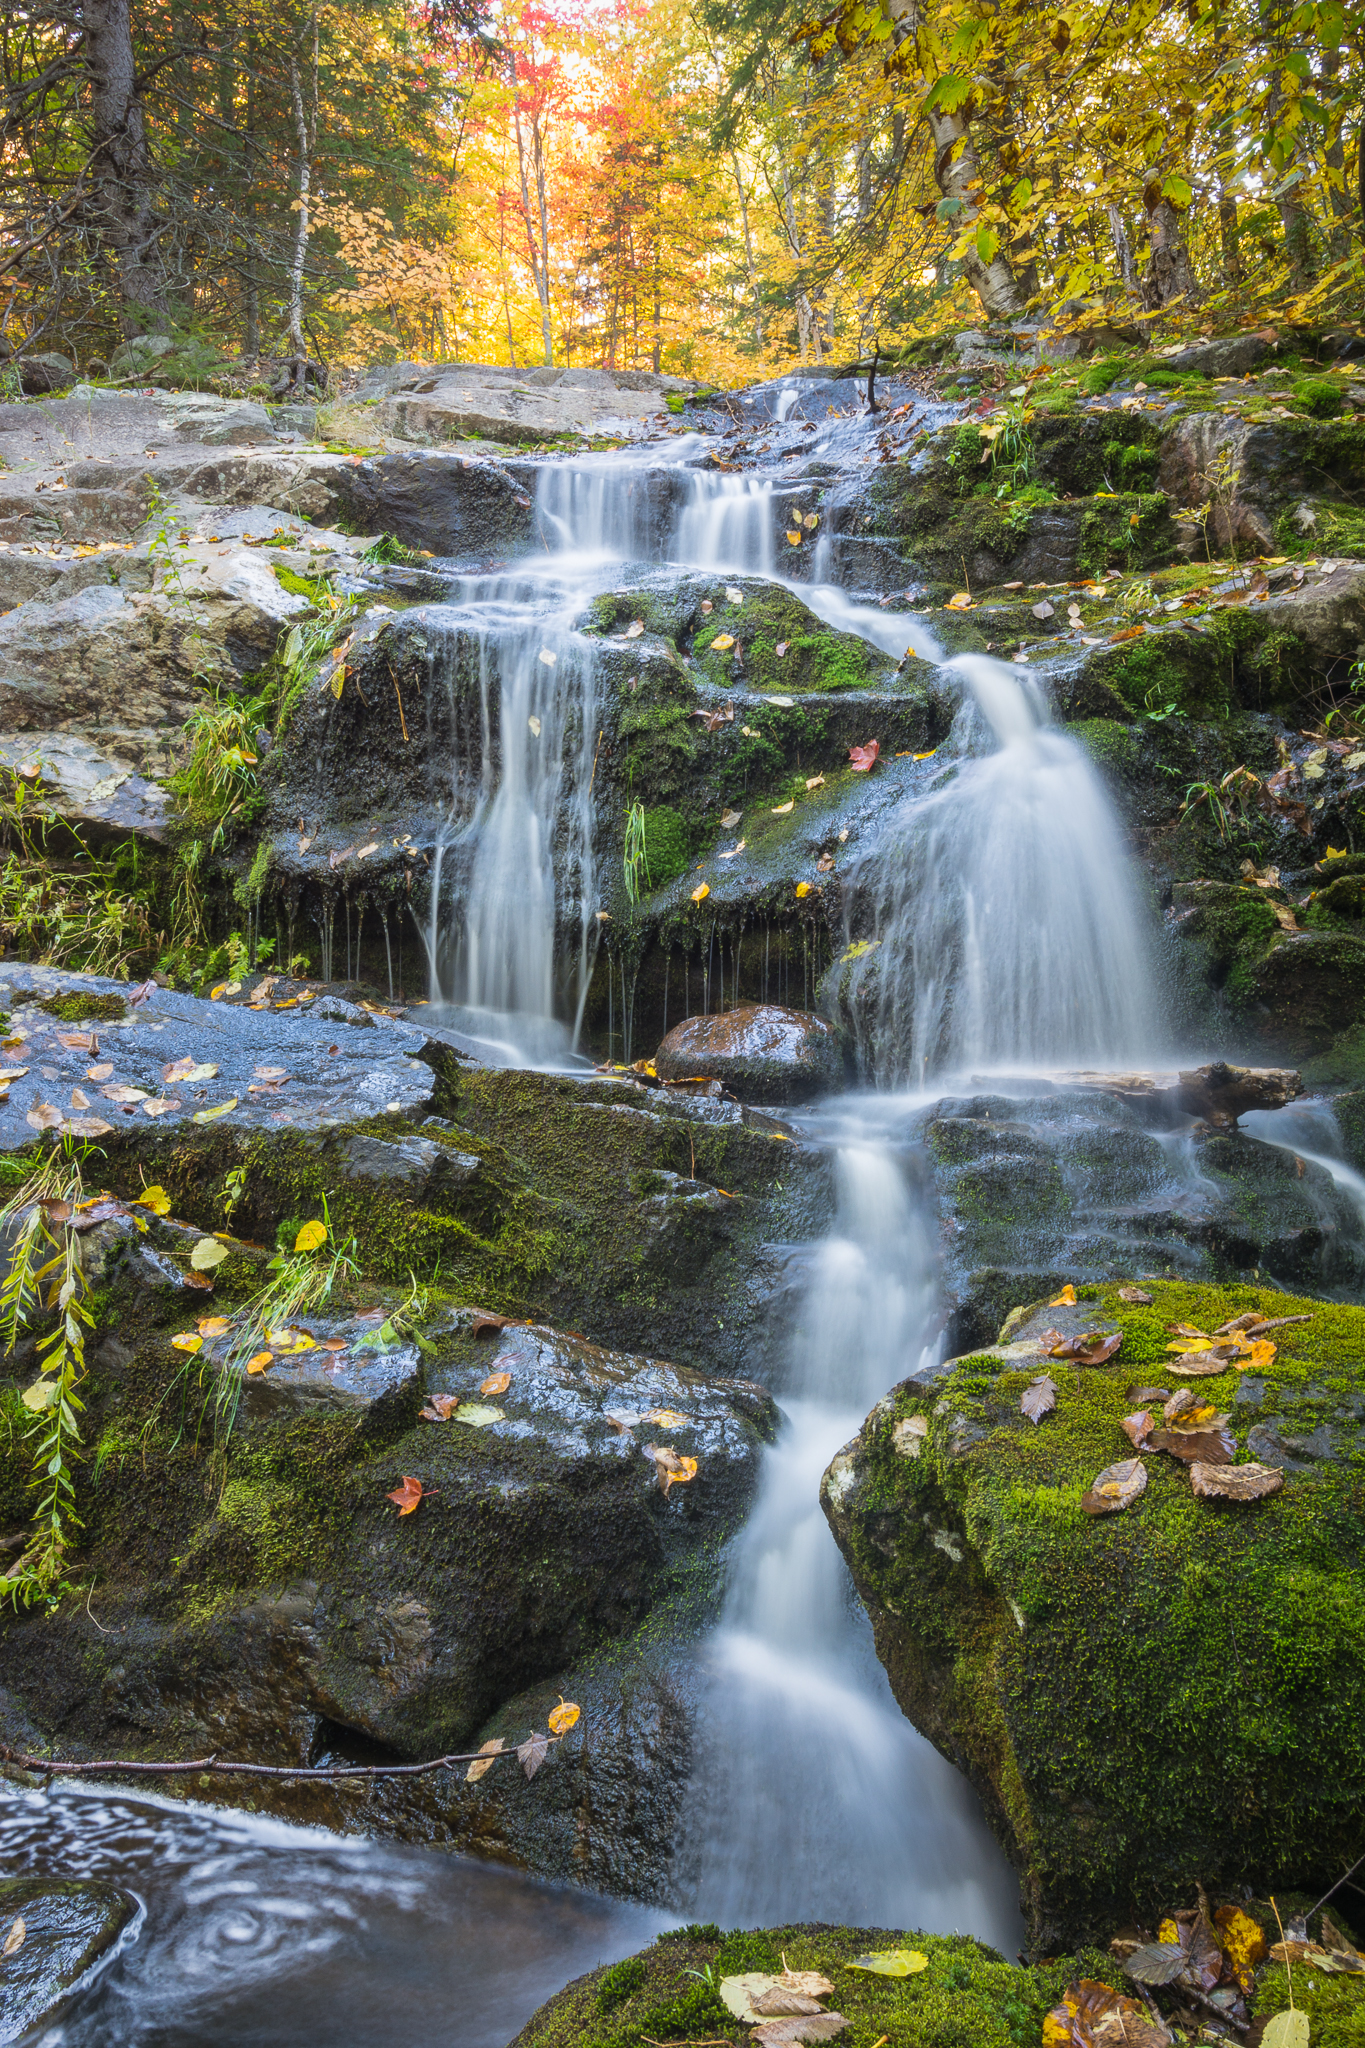 Waterfall on Centennial Ridges Trail (5s, f/22, ISO100)